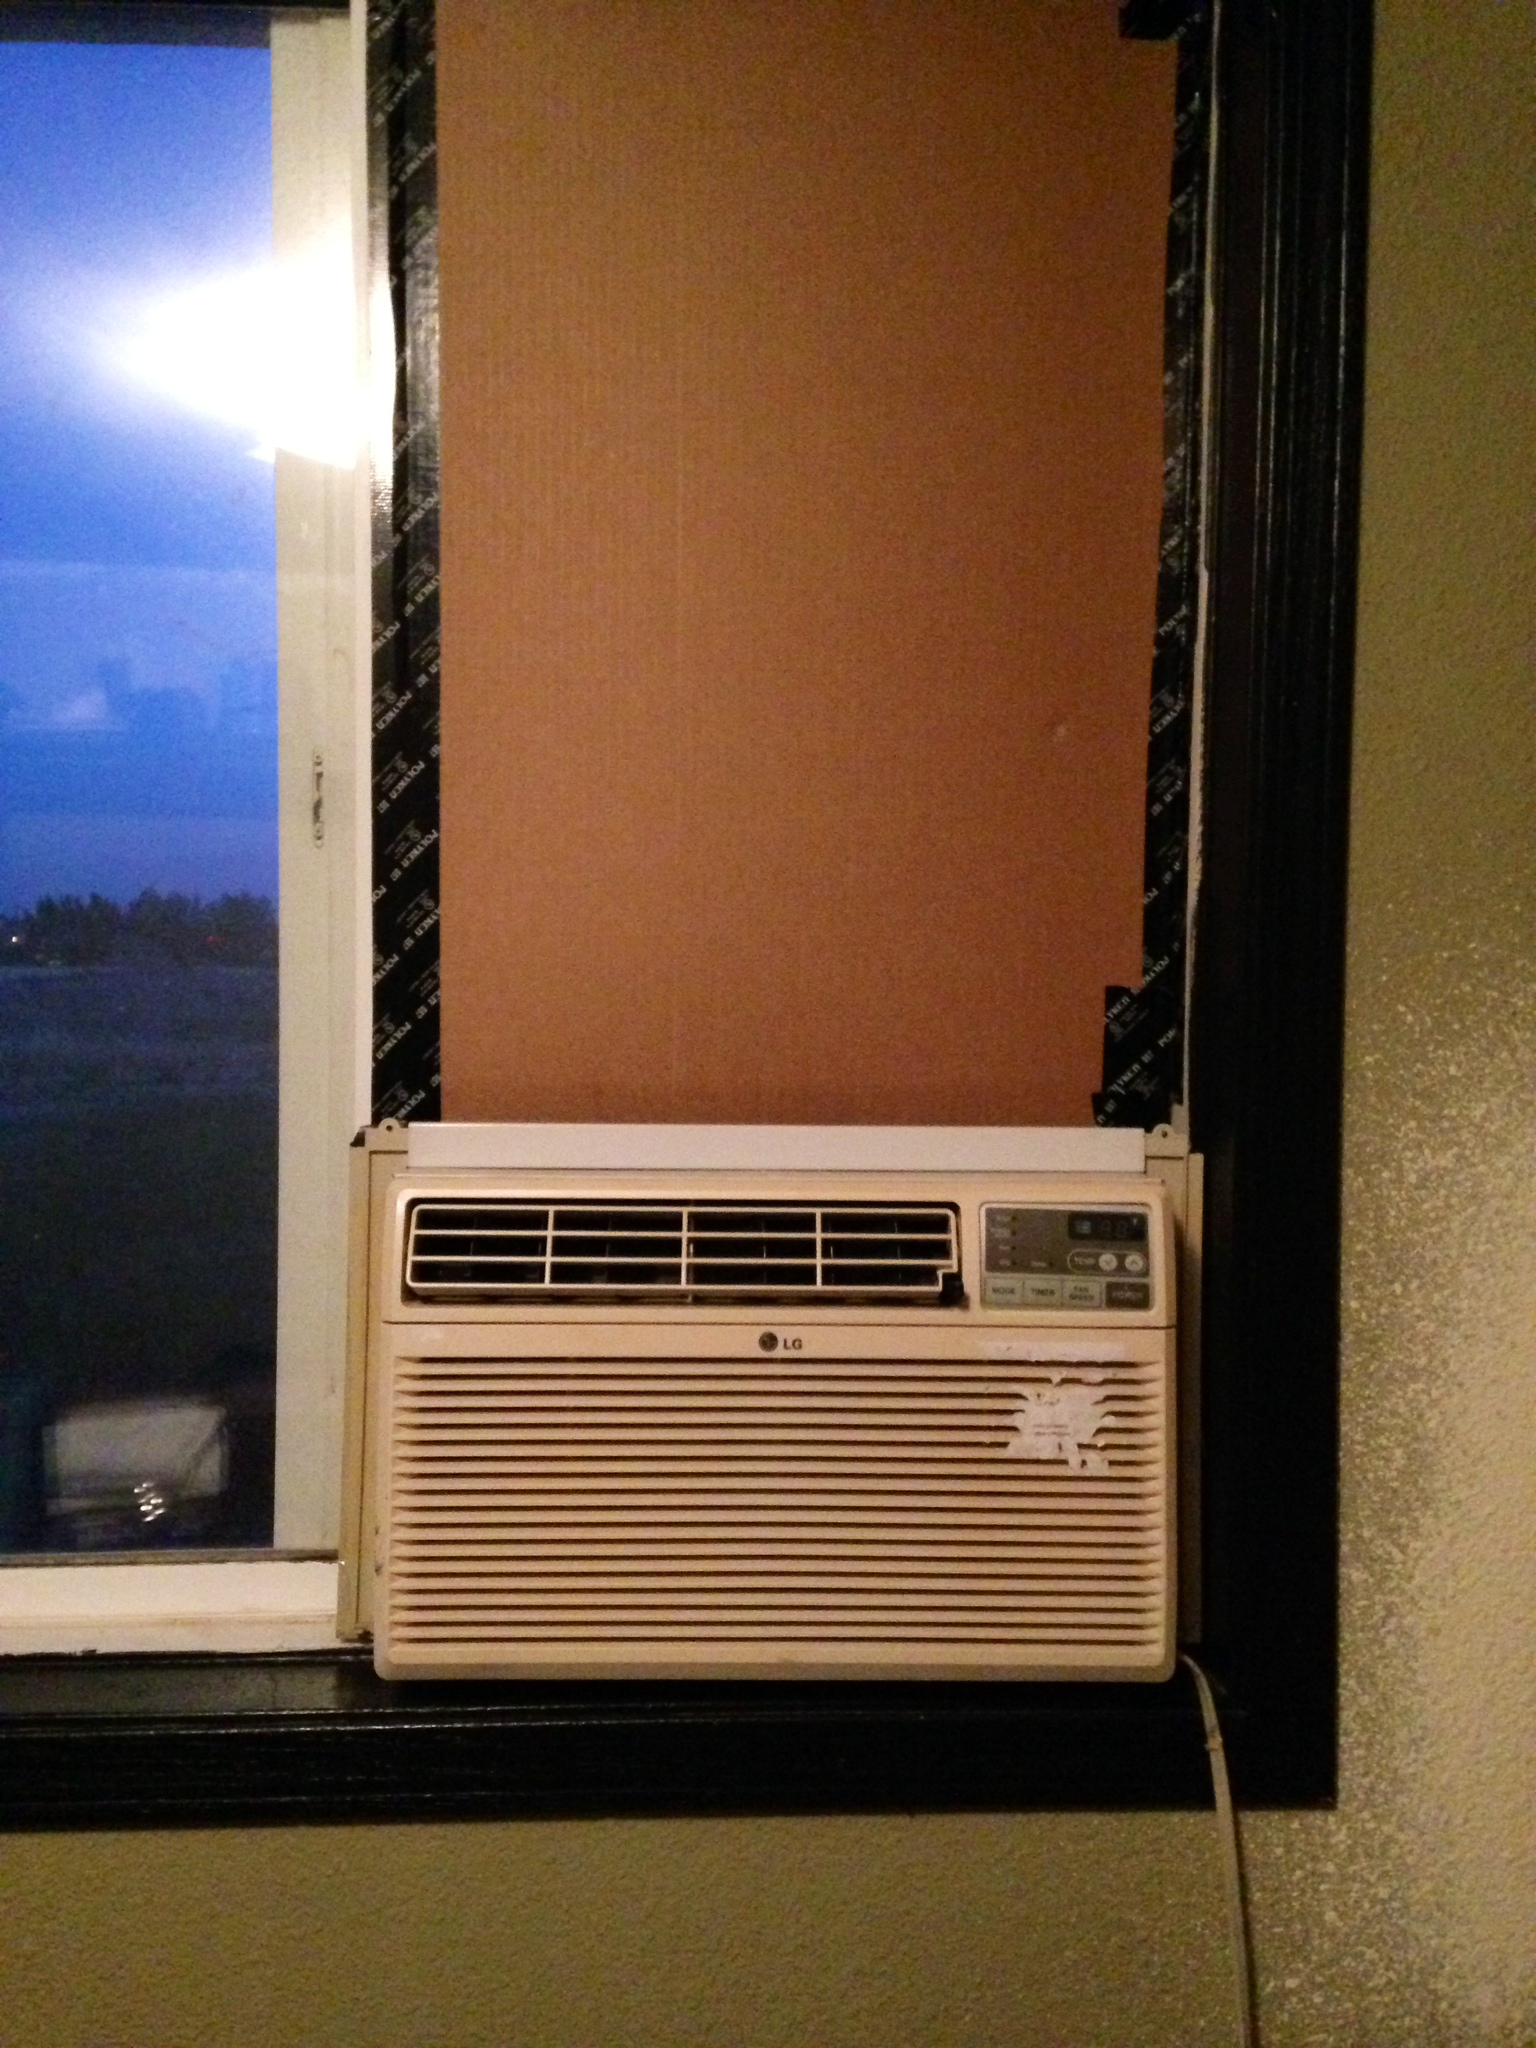 Plastic Door Curtains For Air Conditioner Benefits Of A Window Air Conditioner Vs Portable Air Conditioner